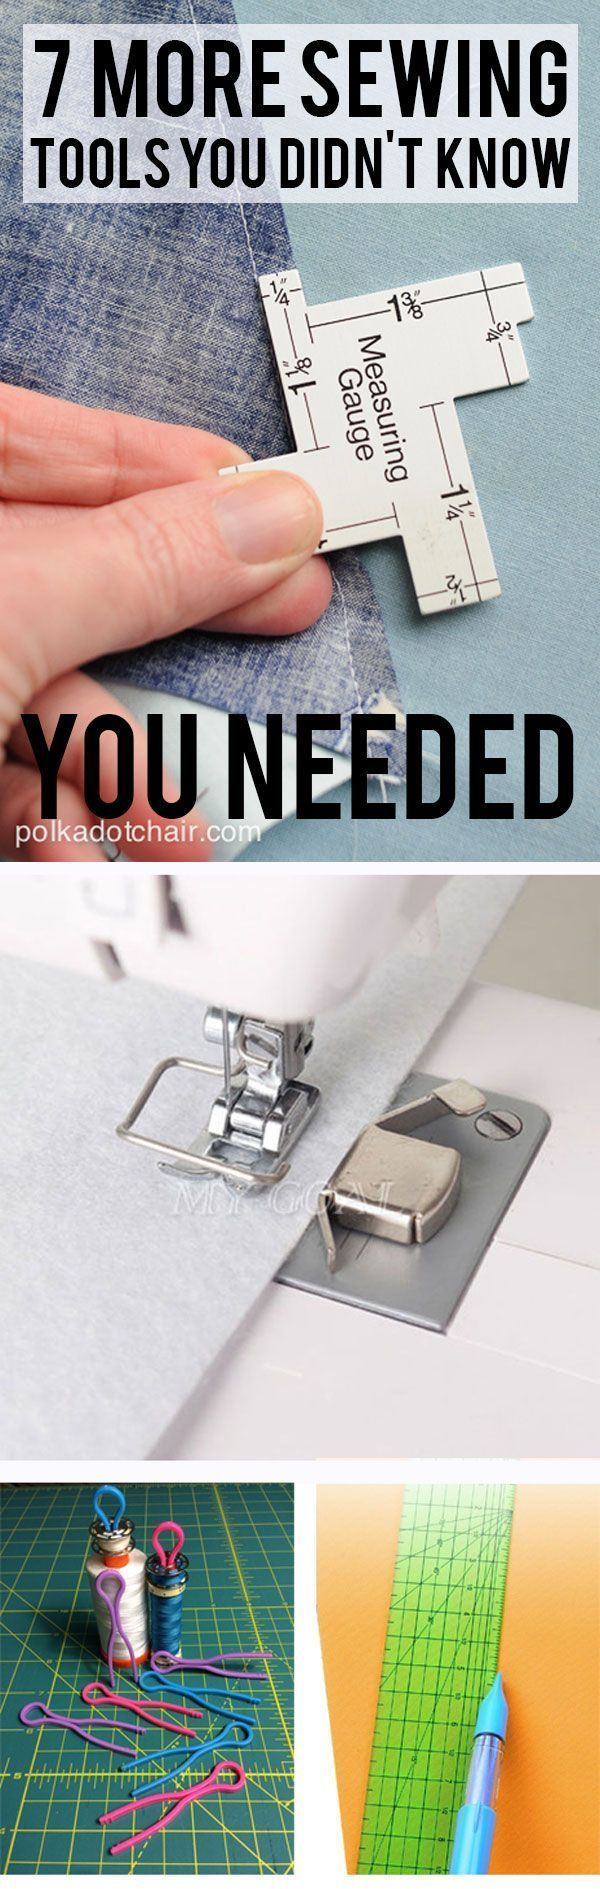 Tools For Diy Projects Best 10 Sewing Tools Ideas On Pinterest Sewing Hacks Sewing